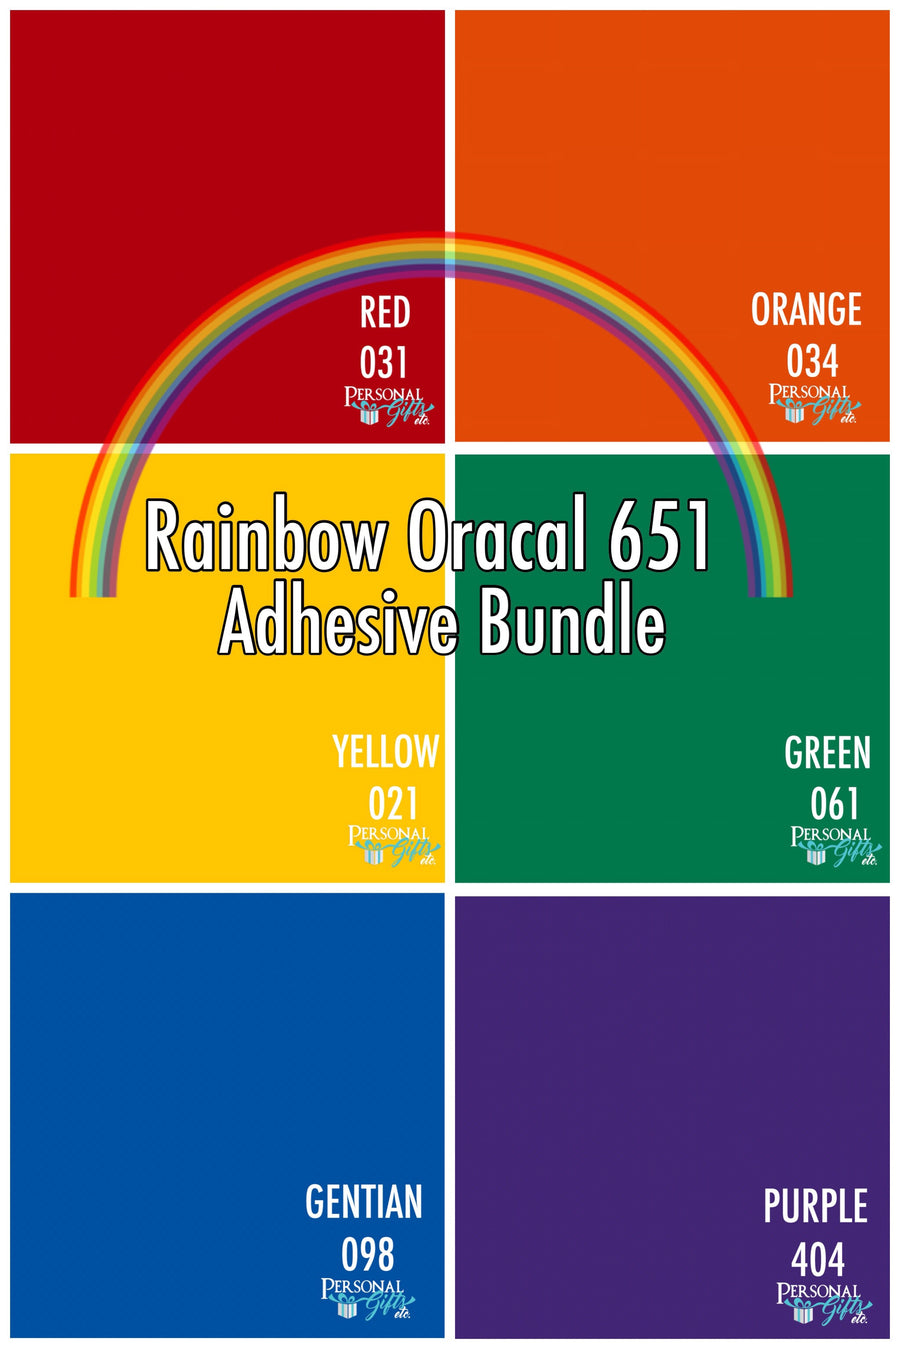 Oracal 651 Adhesive Rainbow Bundle